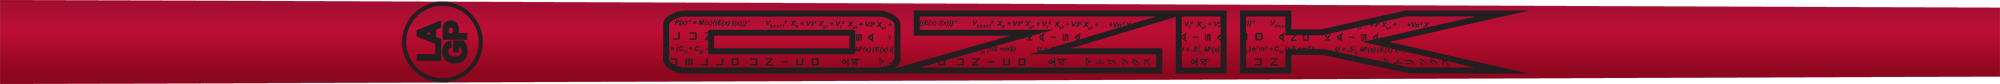 Ozik White Tie: Red Black Satin - Wood 50 R